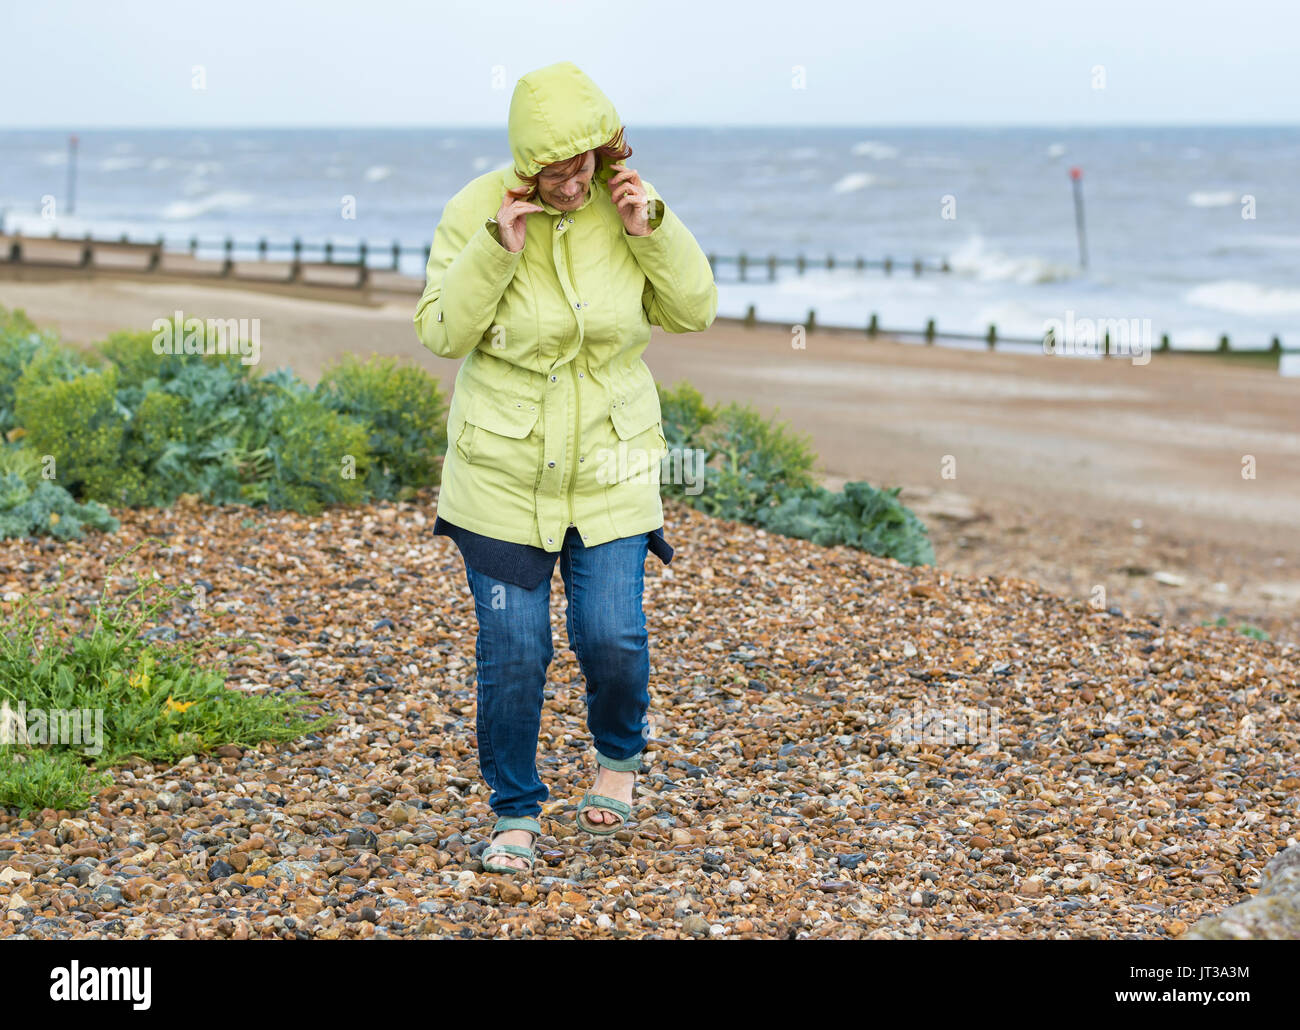 Elderly / Middle aged woman on a beach on a cold windy day in the UK. - Stock Image